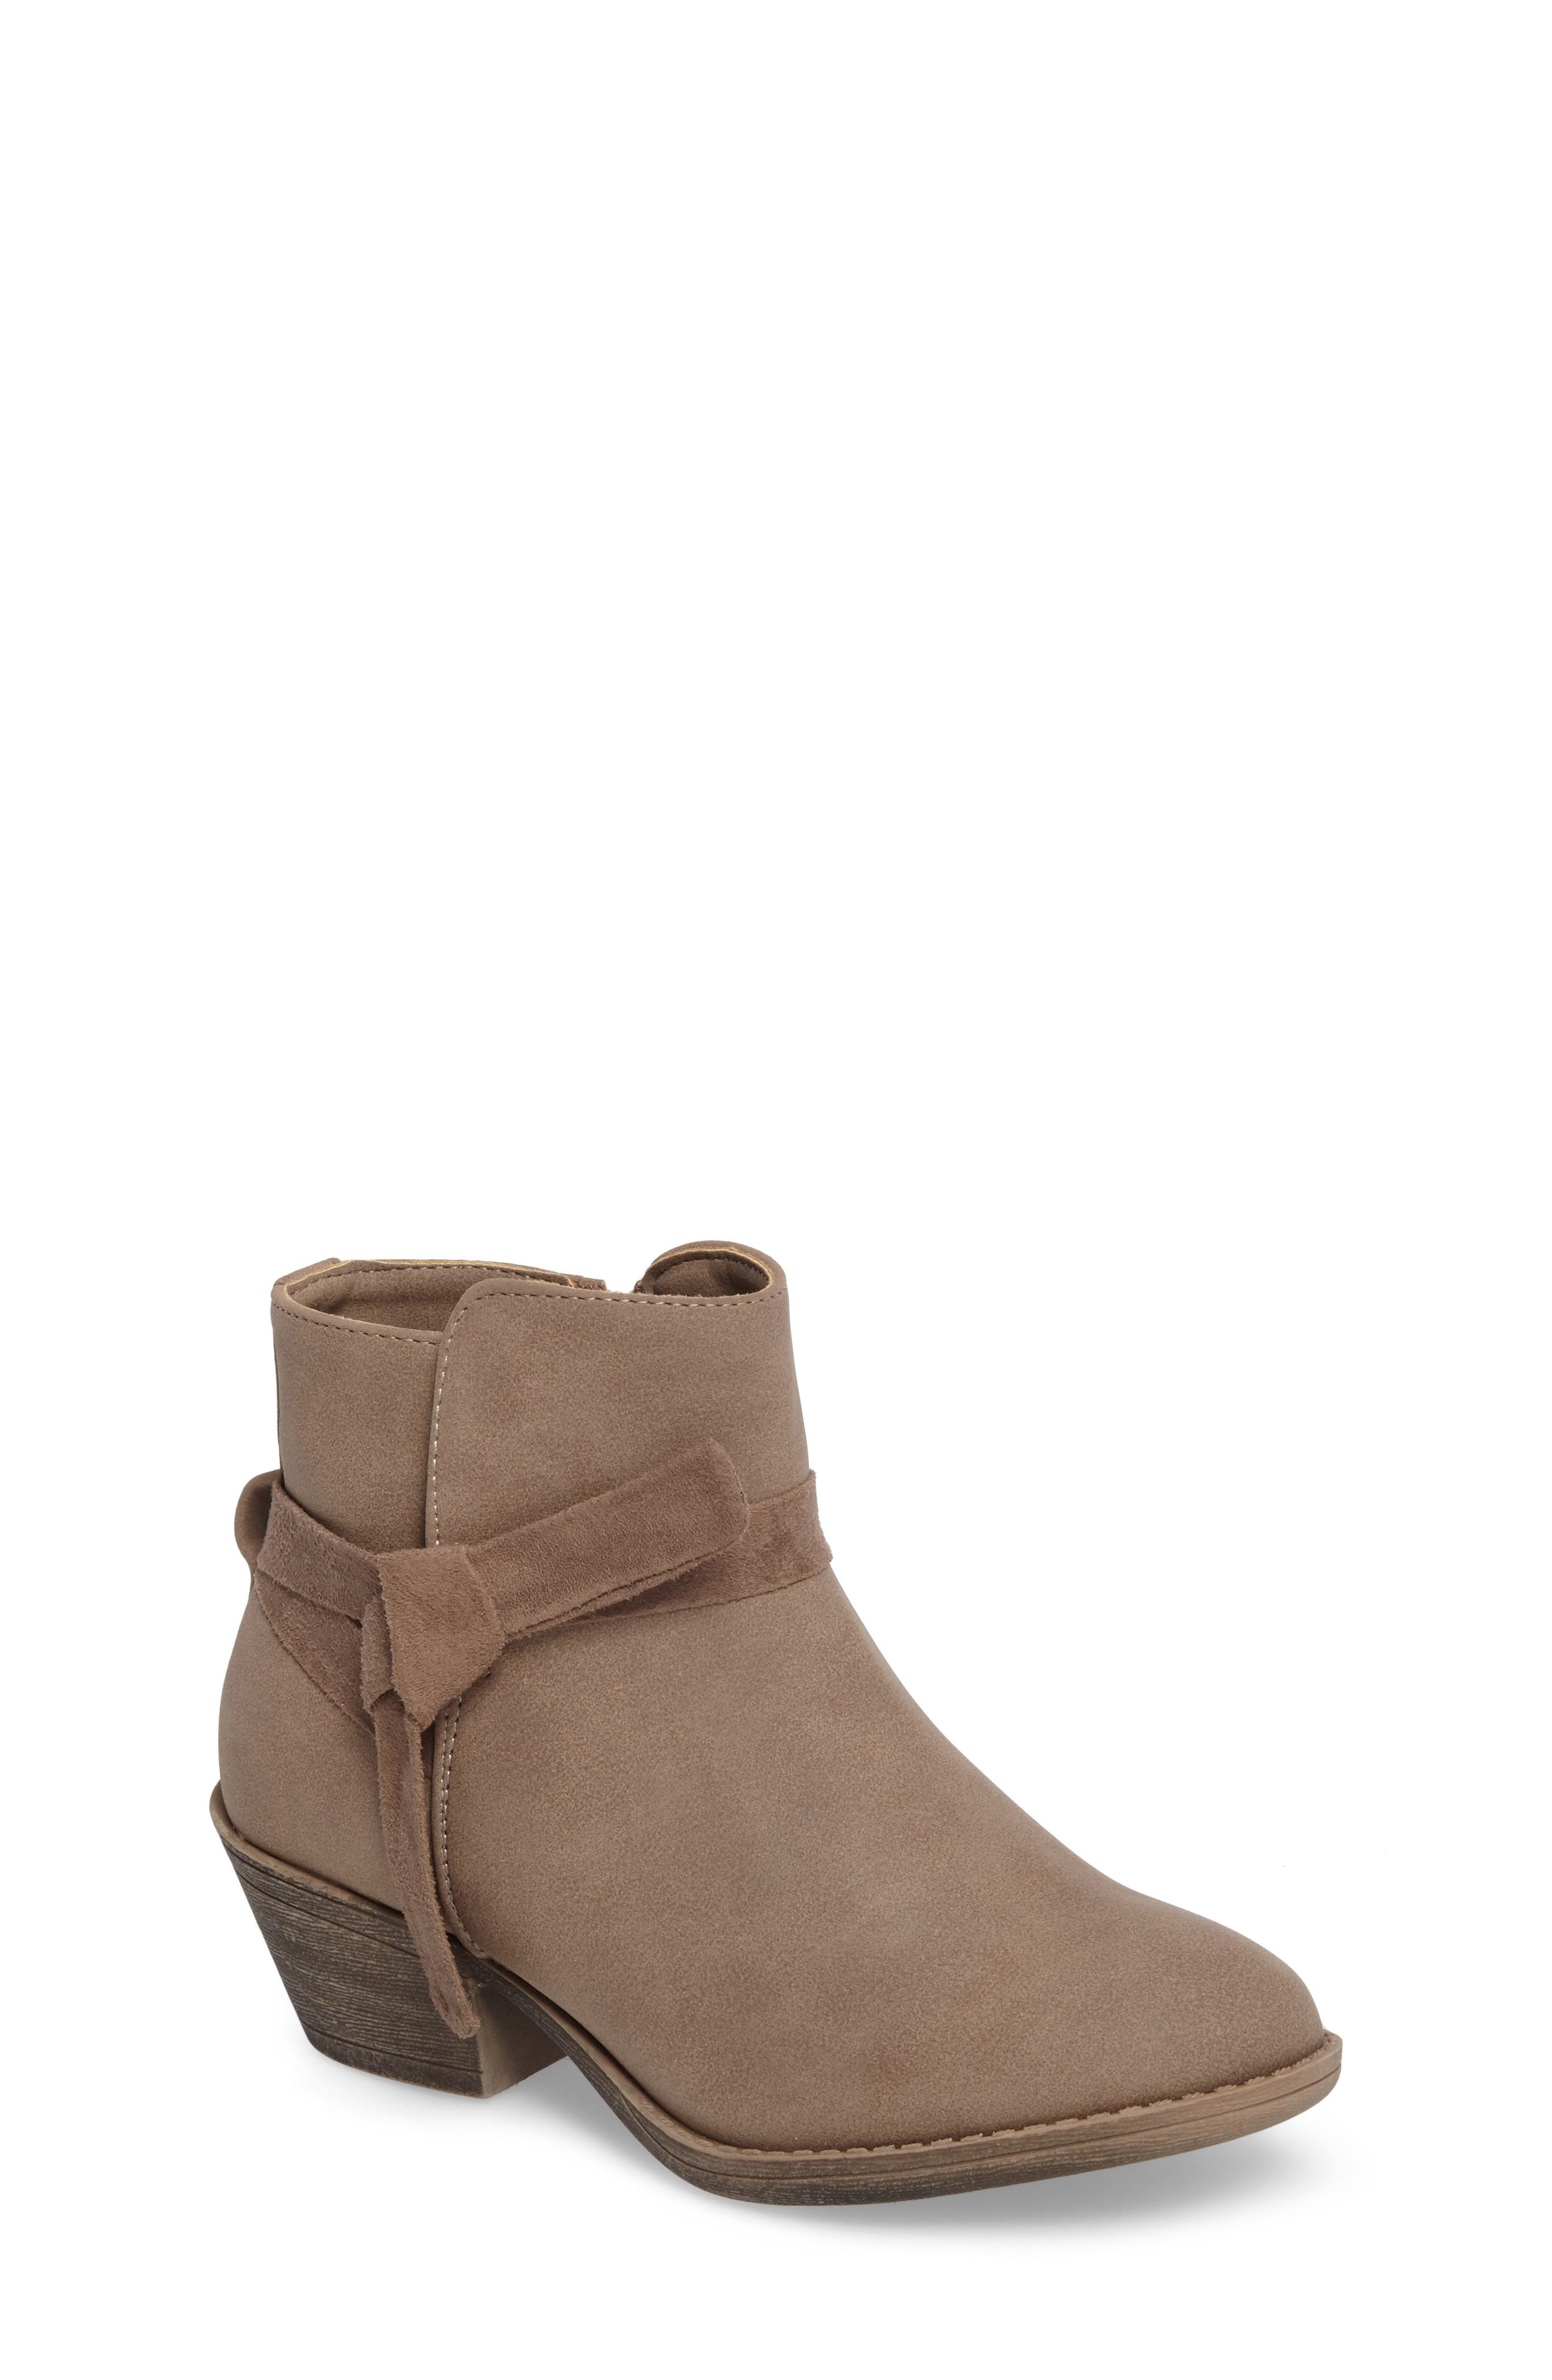 KENNETH COLE NEW YORK Taylor Bootie